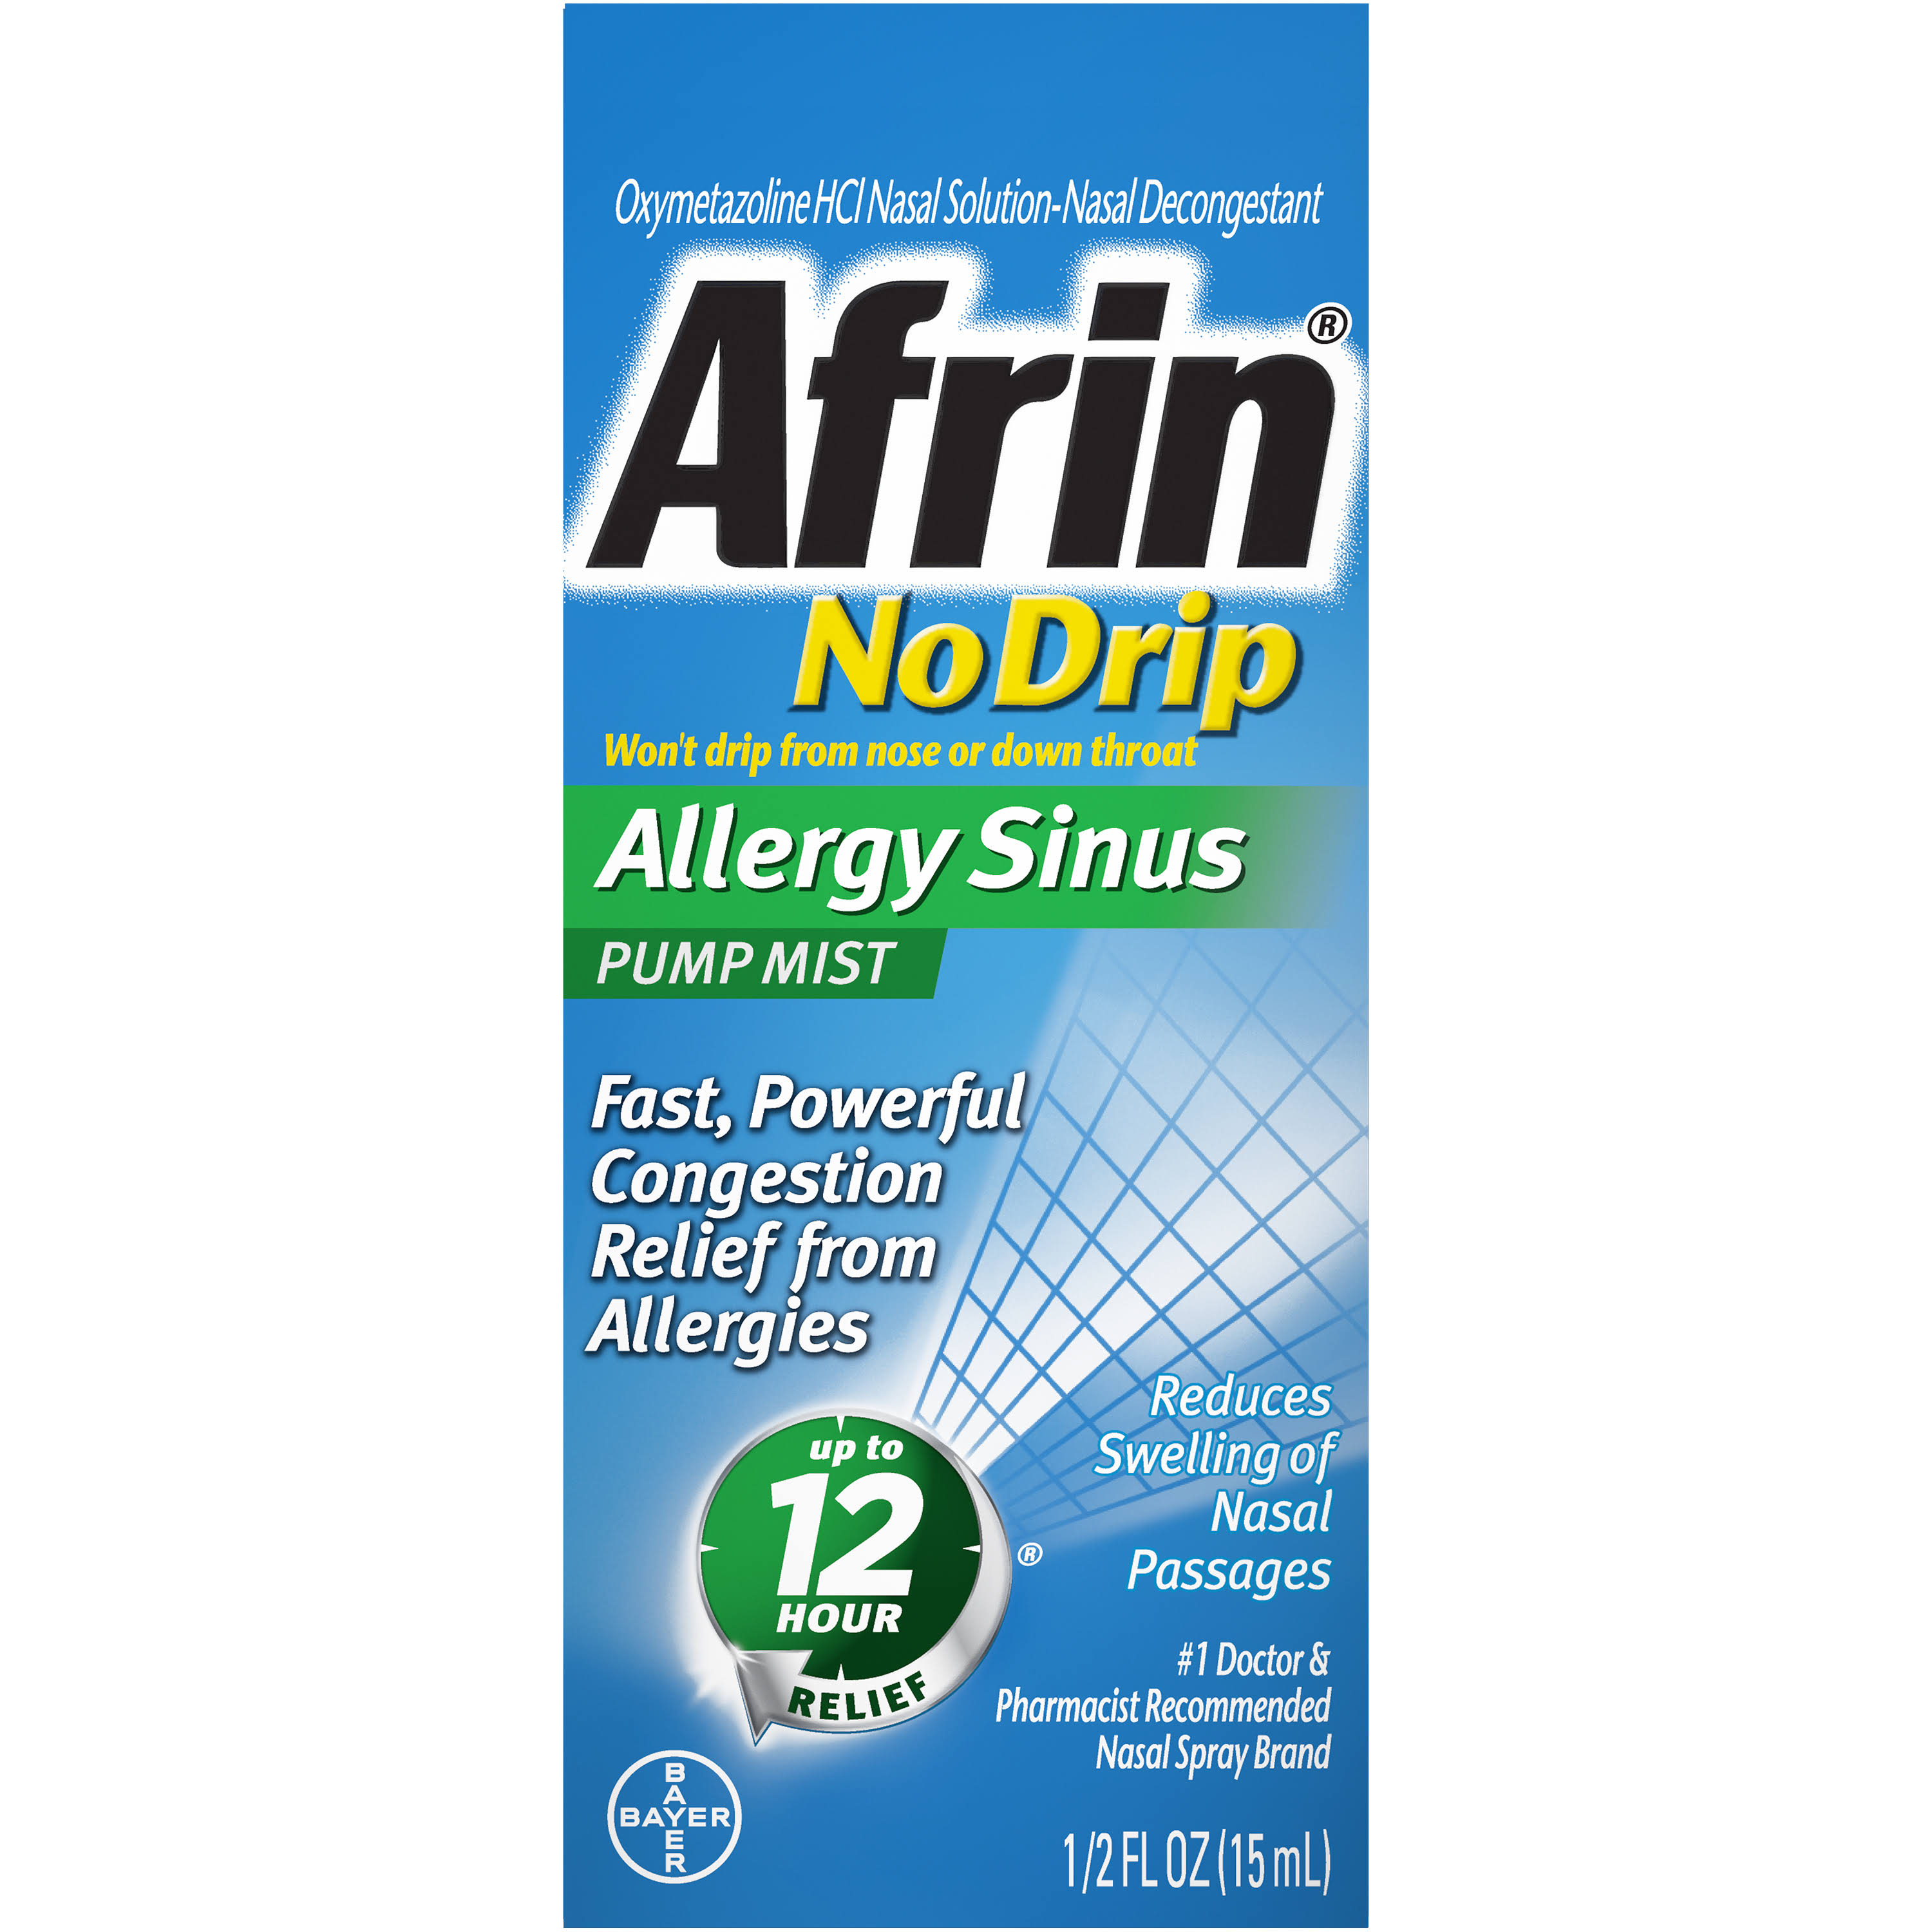 Afrin No Drip Sinus Nasal Decongestant Pump Mist .50 fl. oz. Box